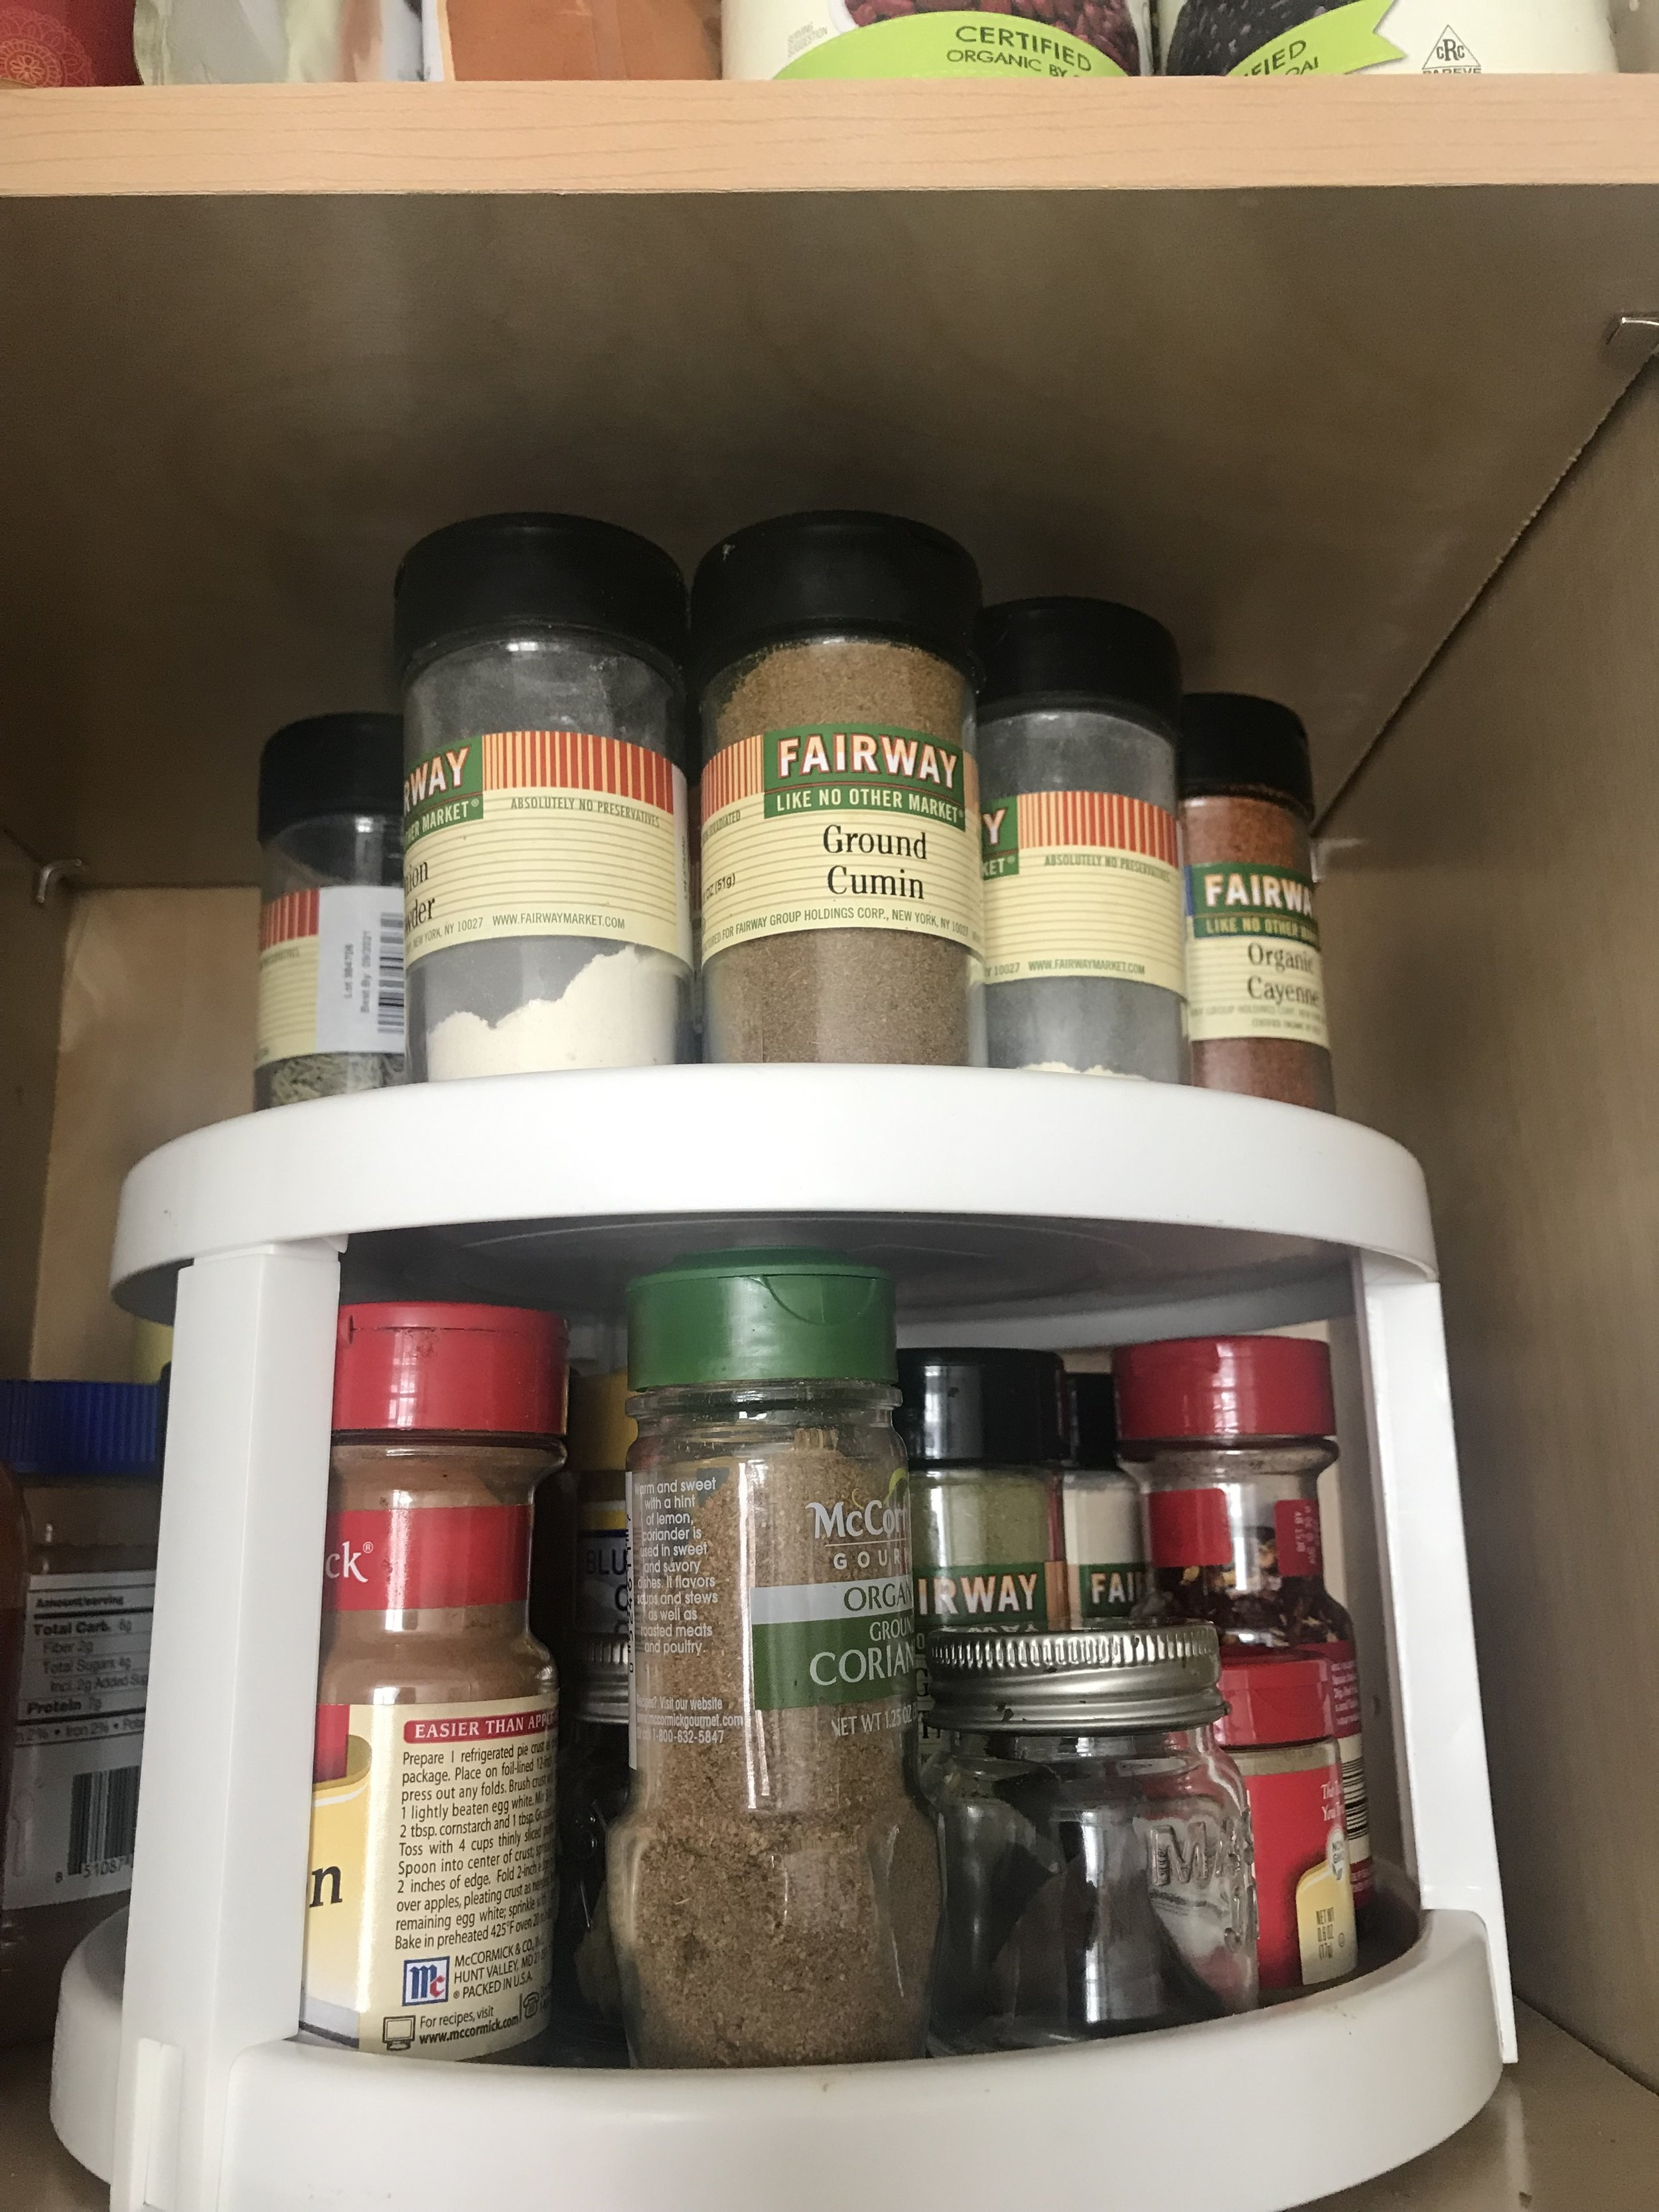 A lazy susan allows you to find all your spices fast for yummy recipes!